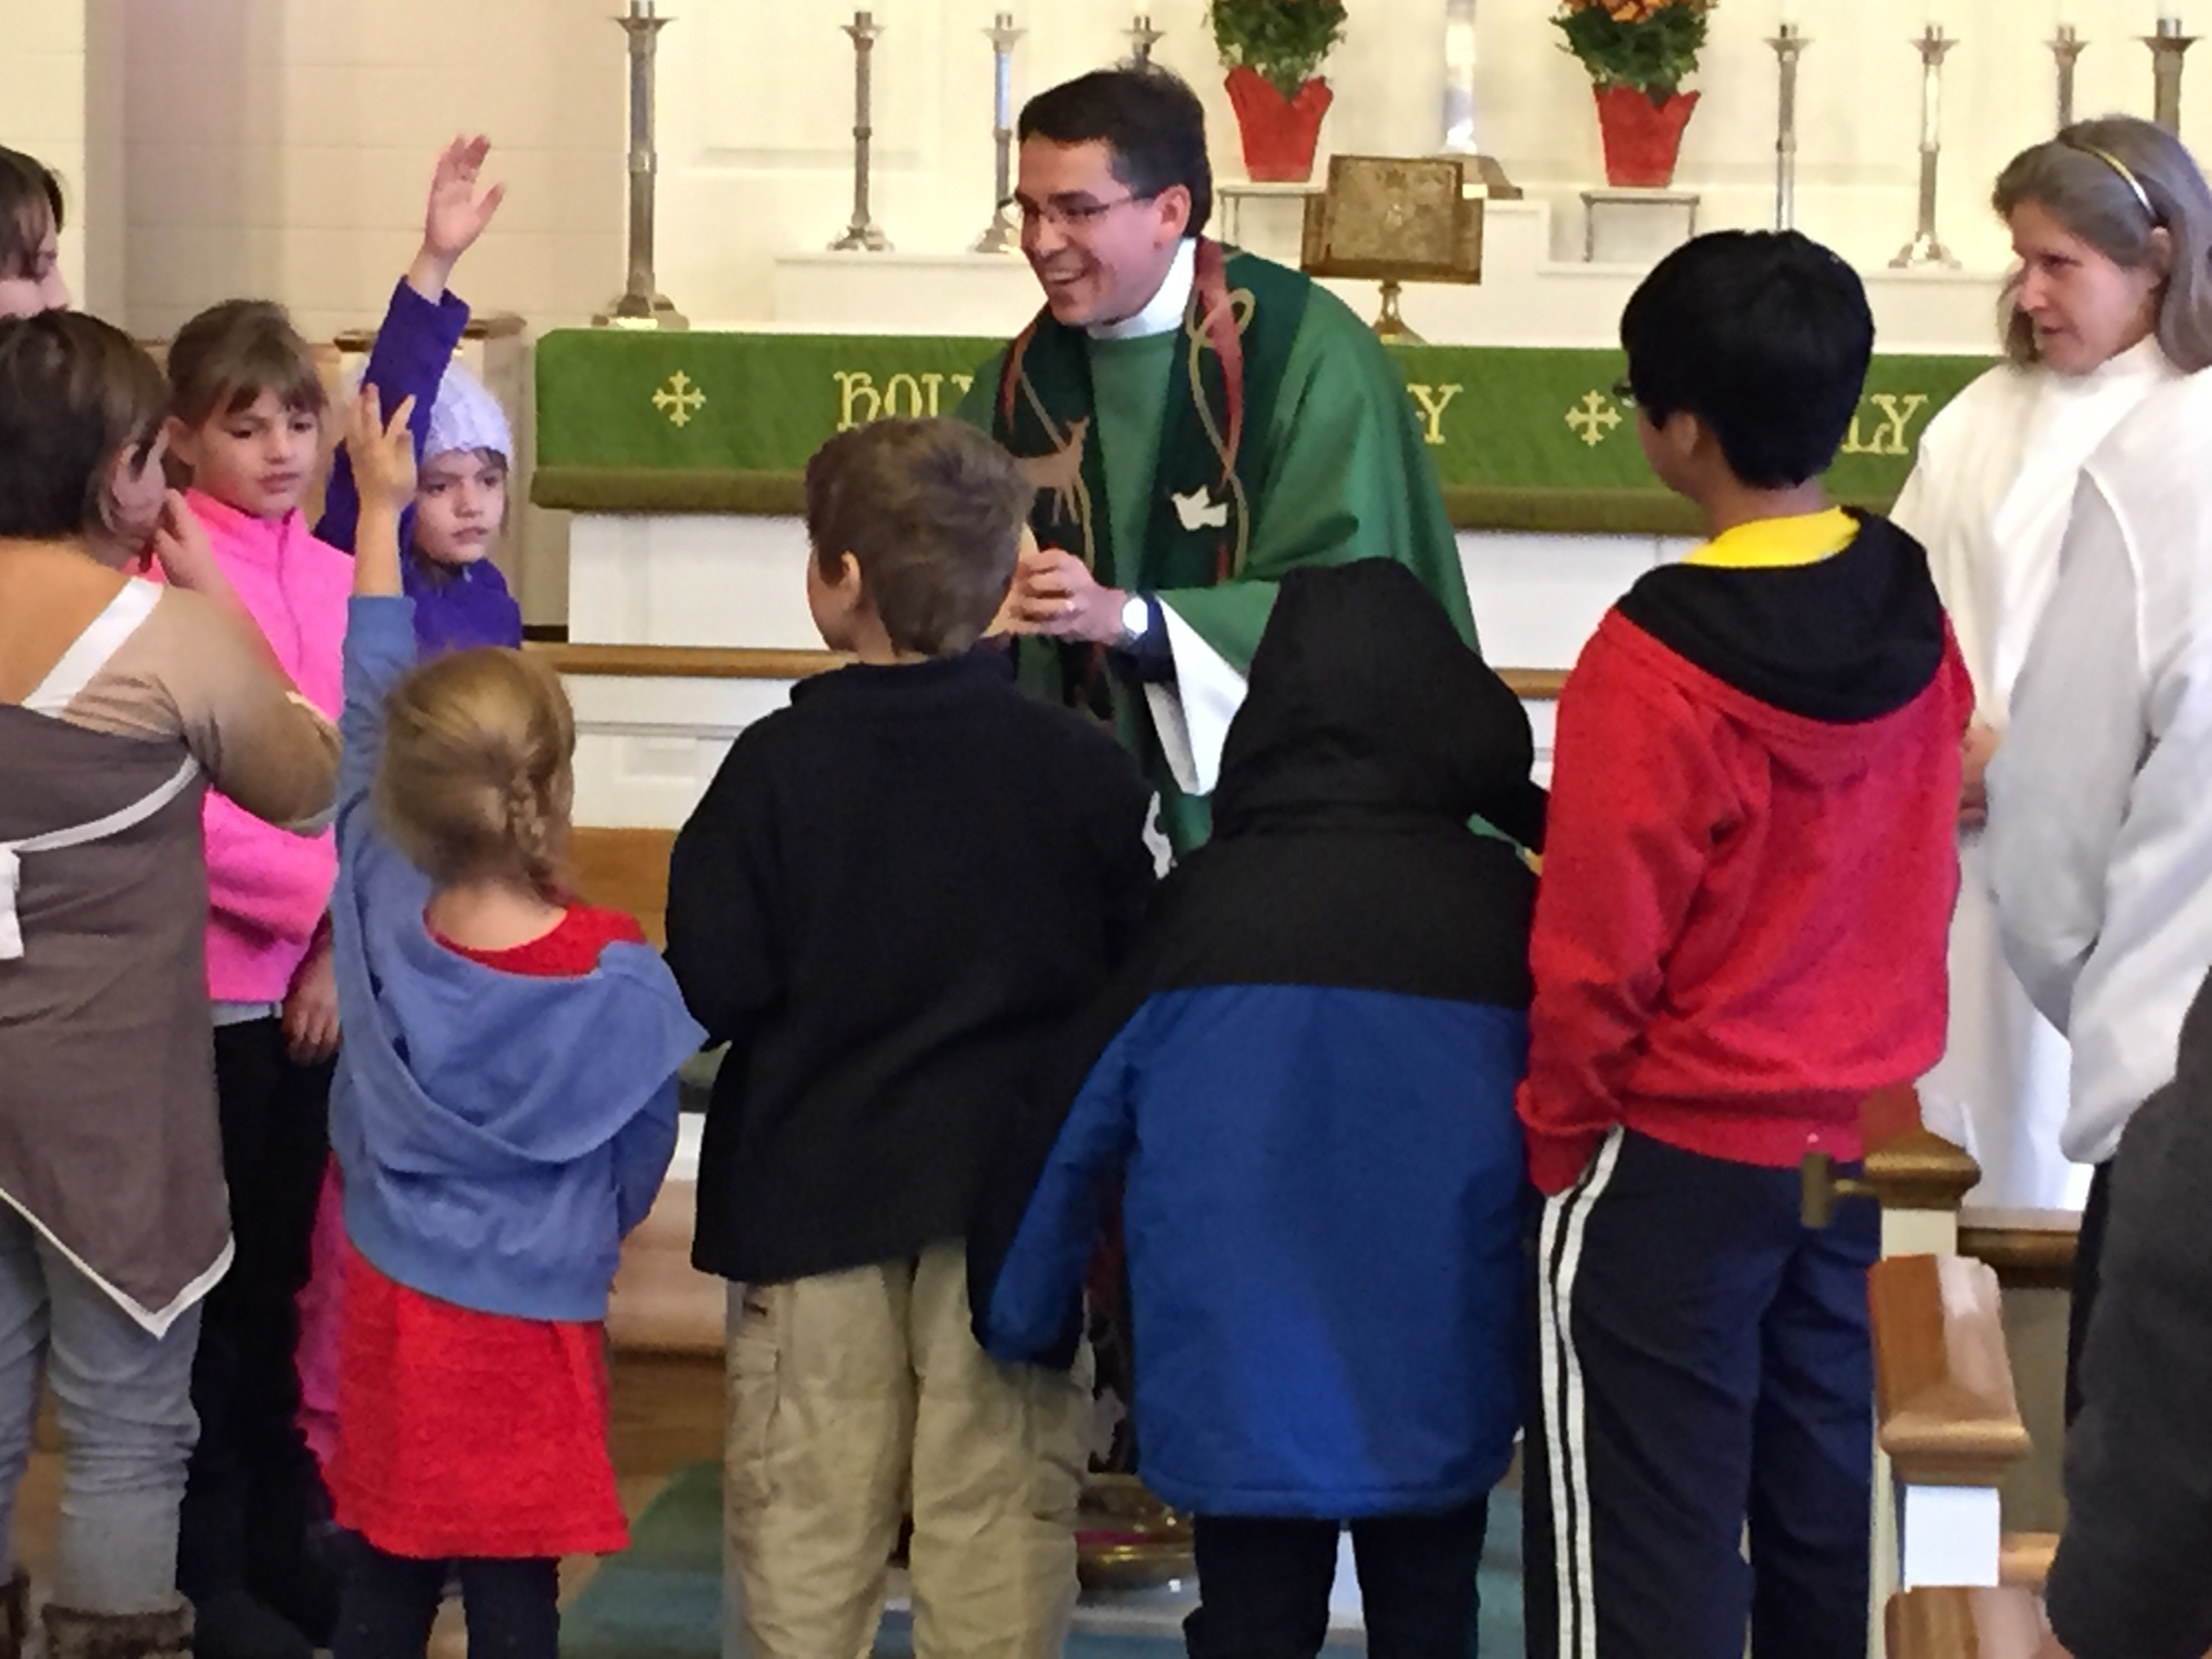 Father Jerry teaches children about Holy Communion at our 3rd Sunday of the Month Children's Eucharist.